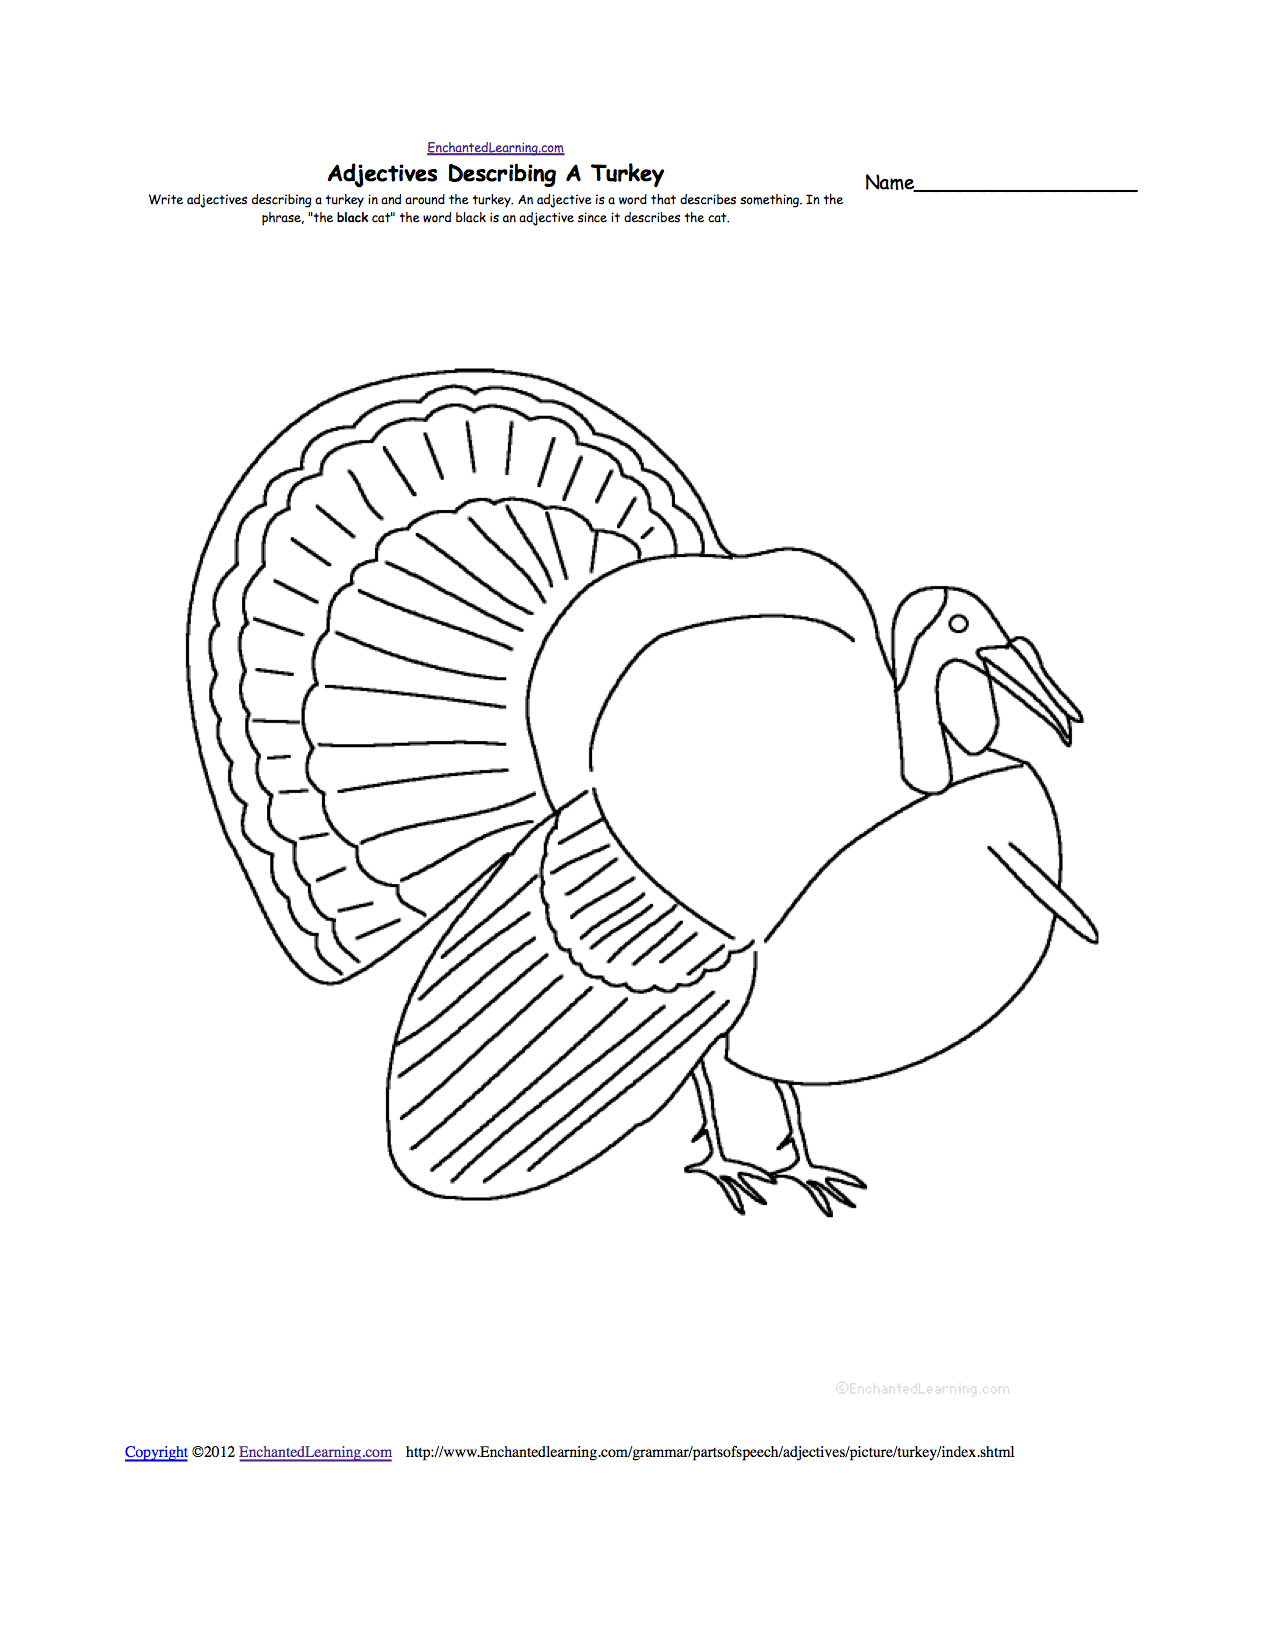 adjectives describing a turkey - Pictures Of Turkeys For Kids 2